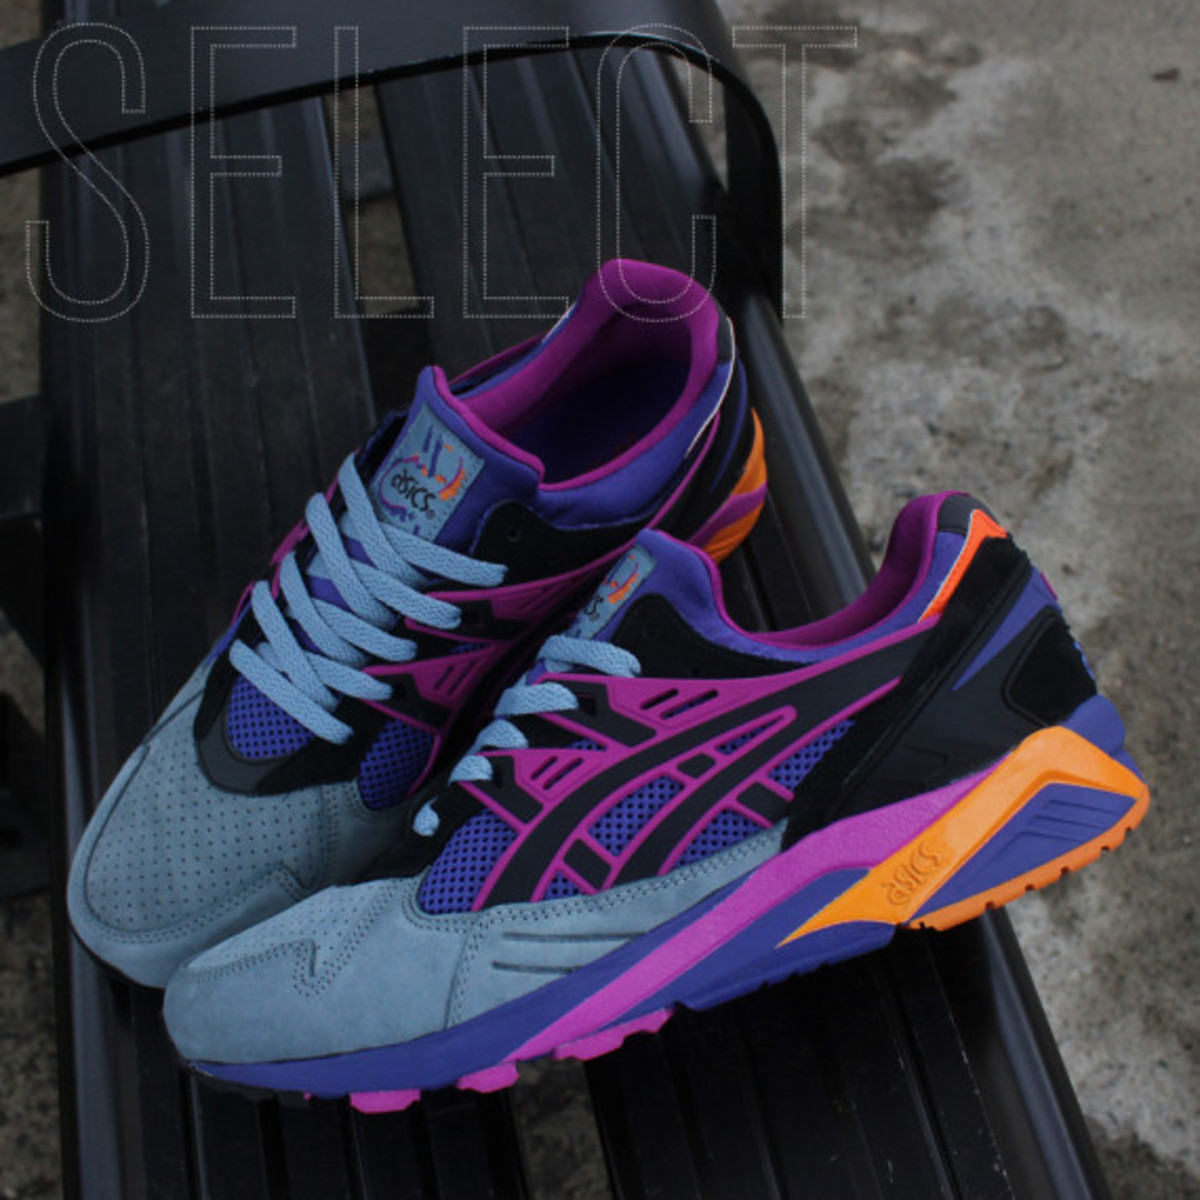 Packer Shoes x ASICS GEL-Kayano Vol. 2 | Officially Unveiled - 2